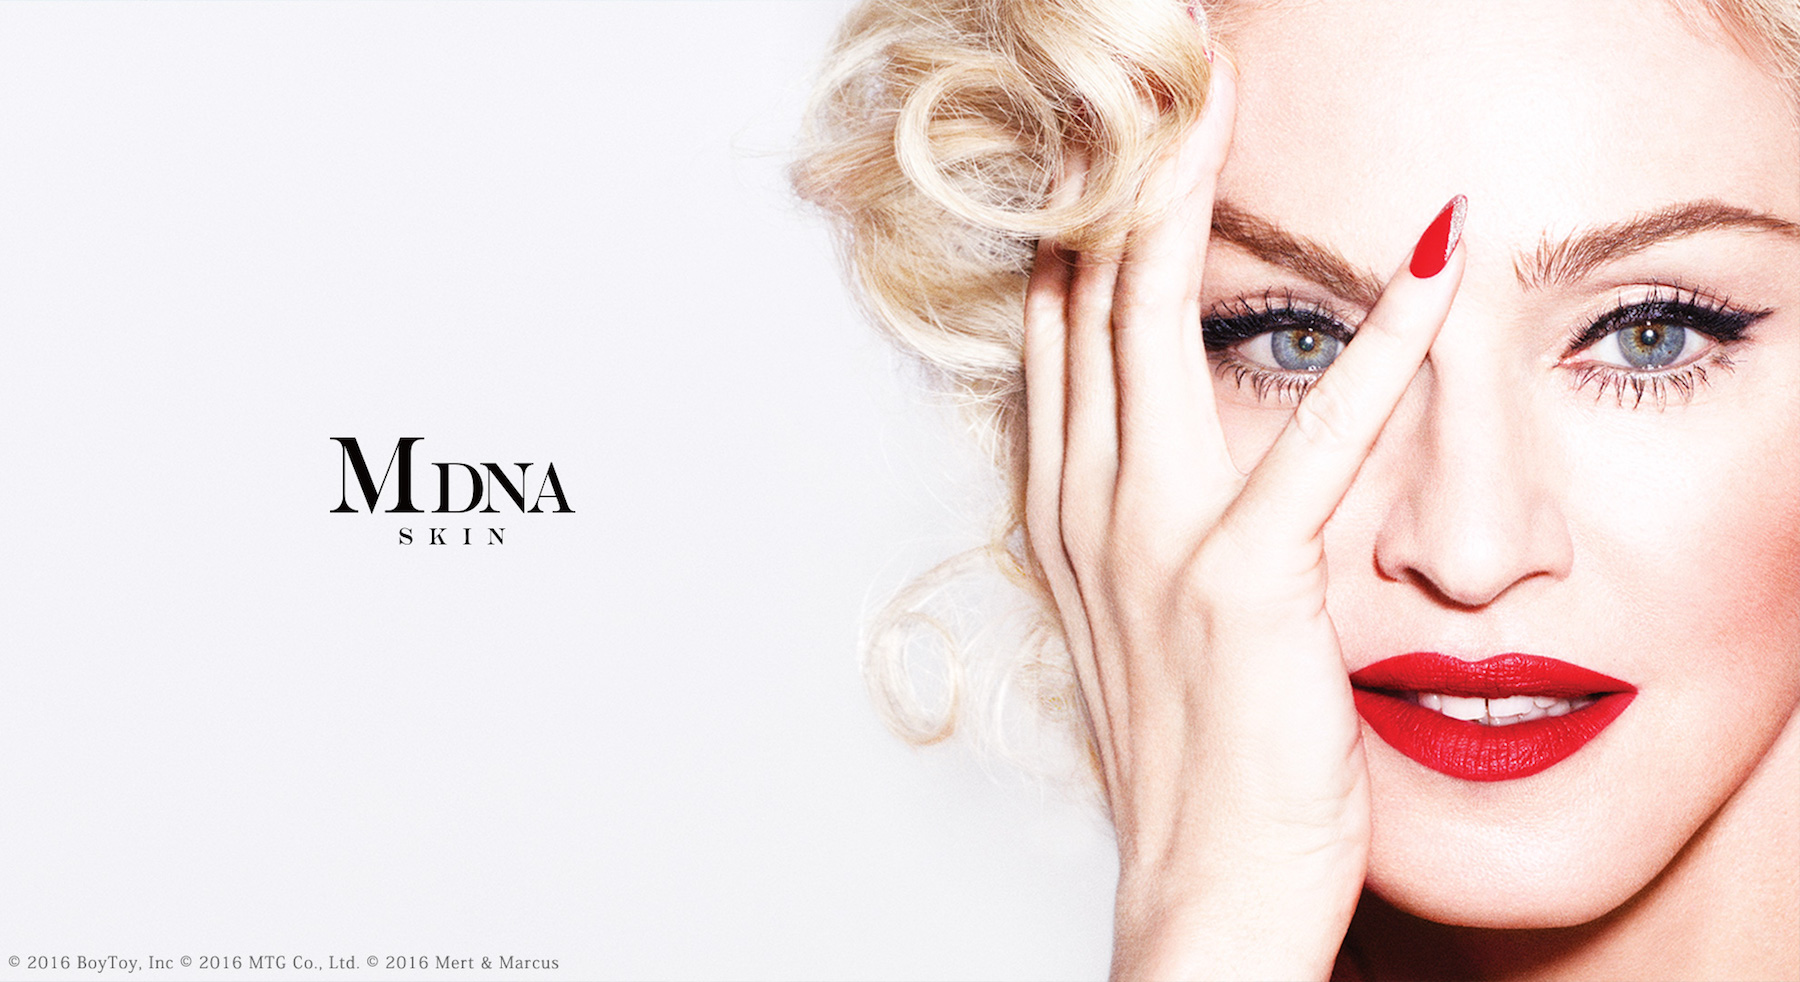 madonna, mdna skin, music, epic rights, licensing